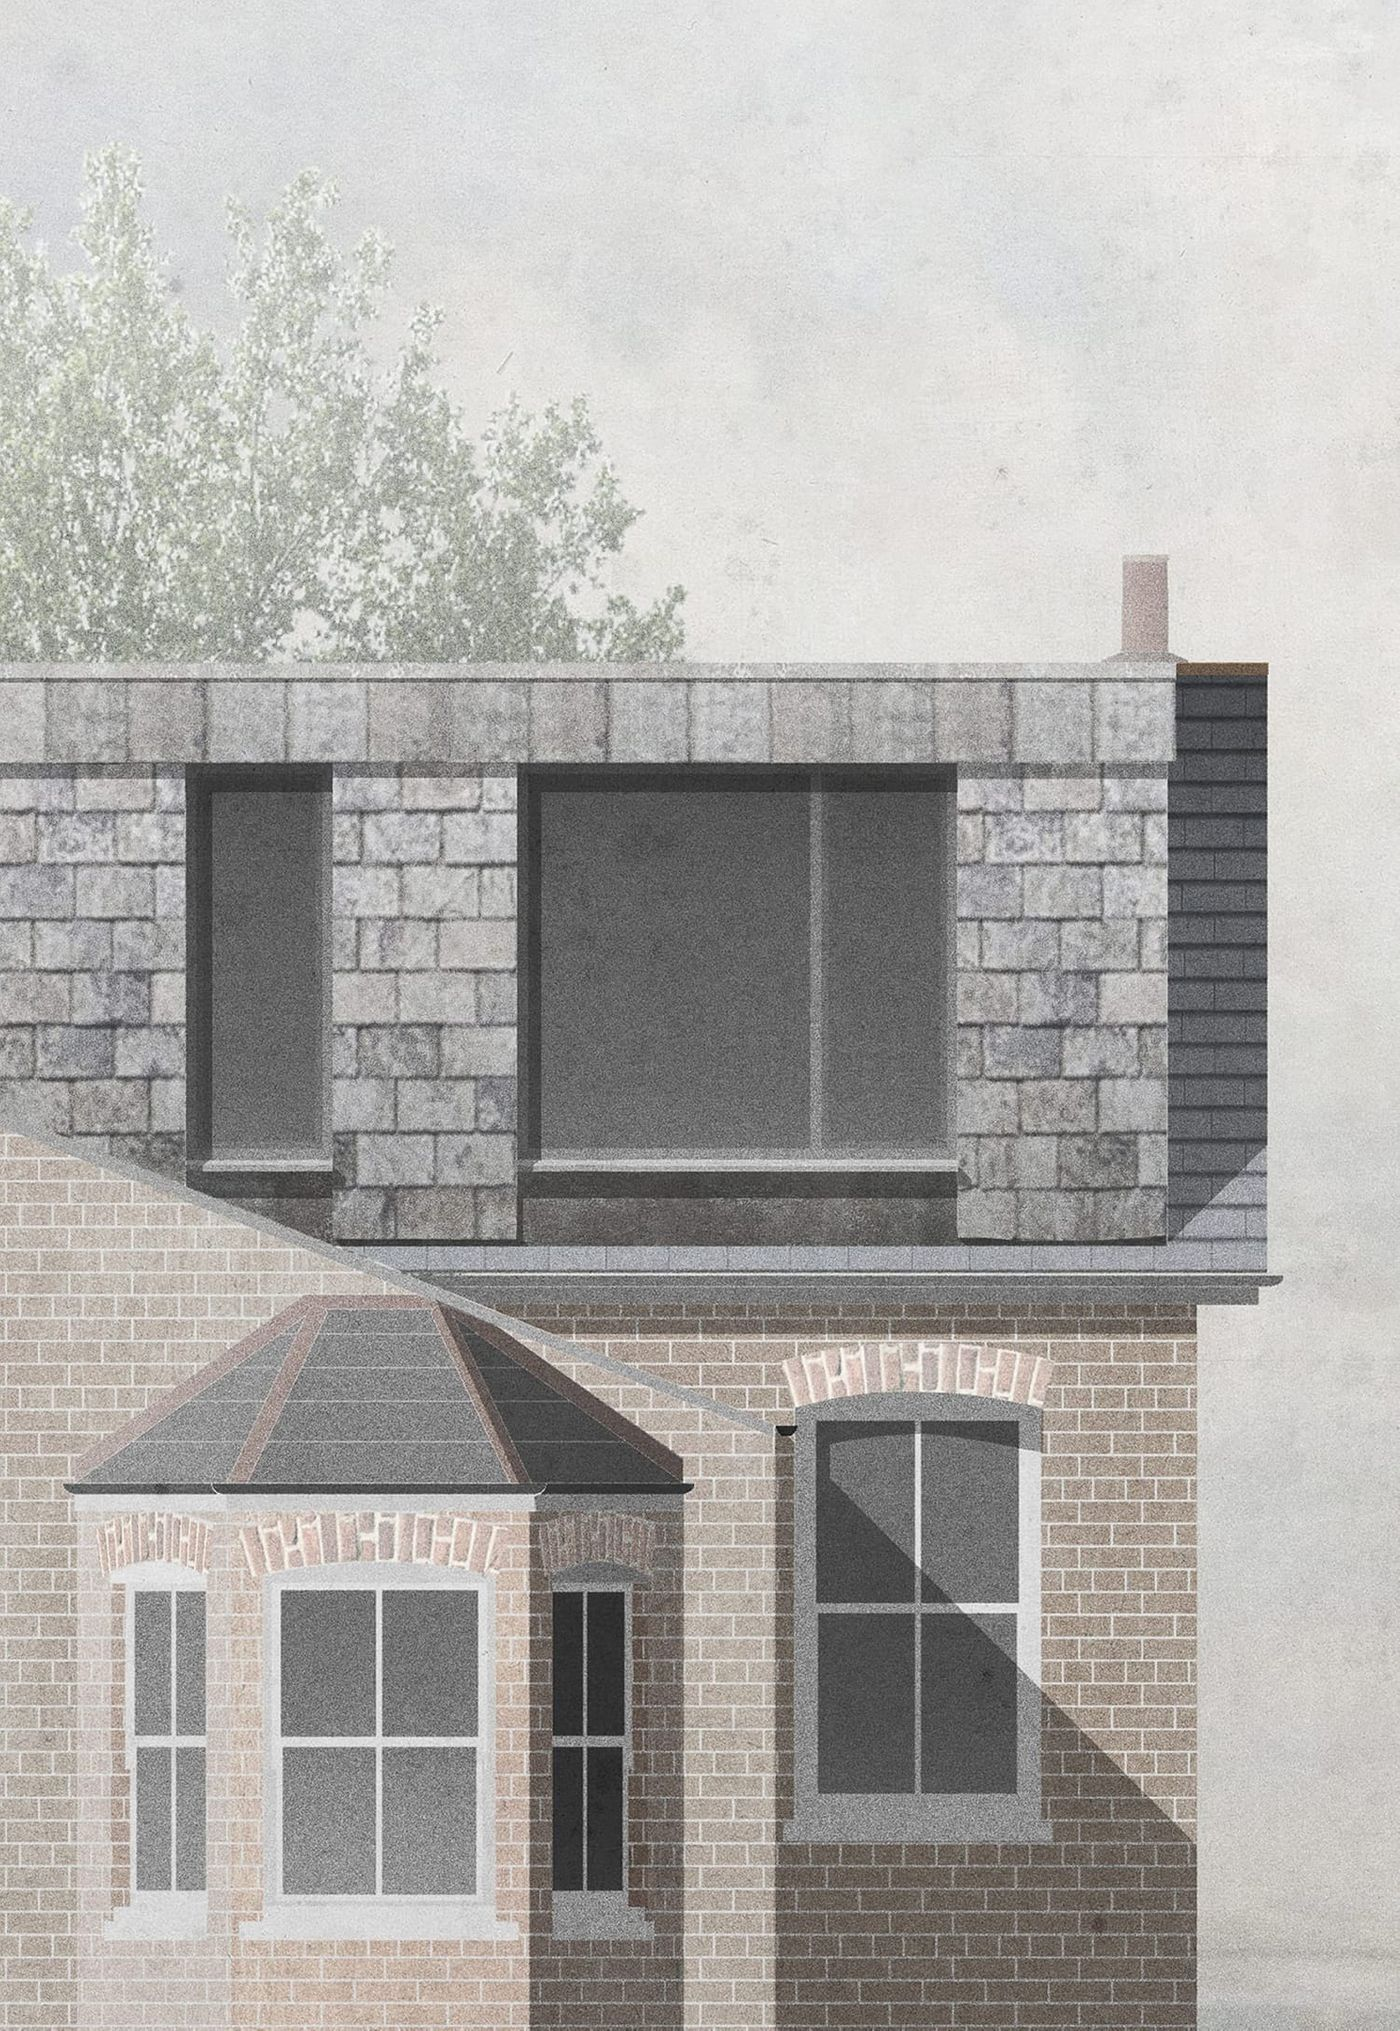 Slate and lead clad rear dormer extension and loft conversion at Northbrook Road, London designed by From Works.